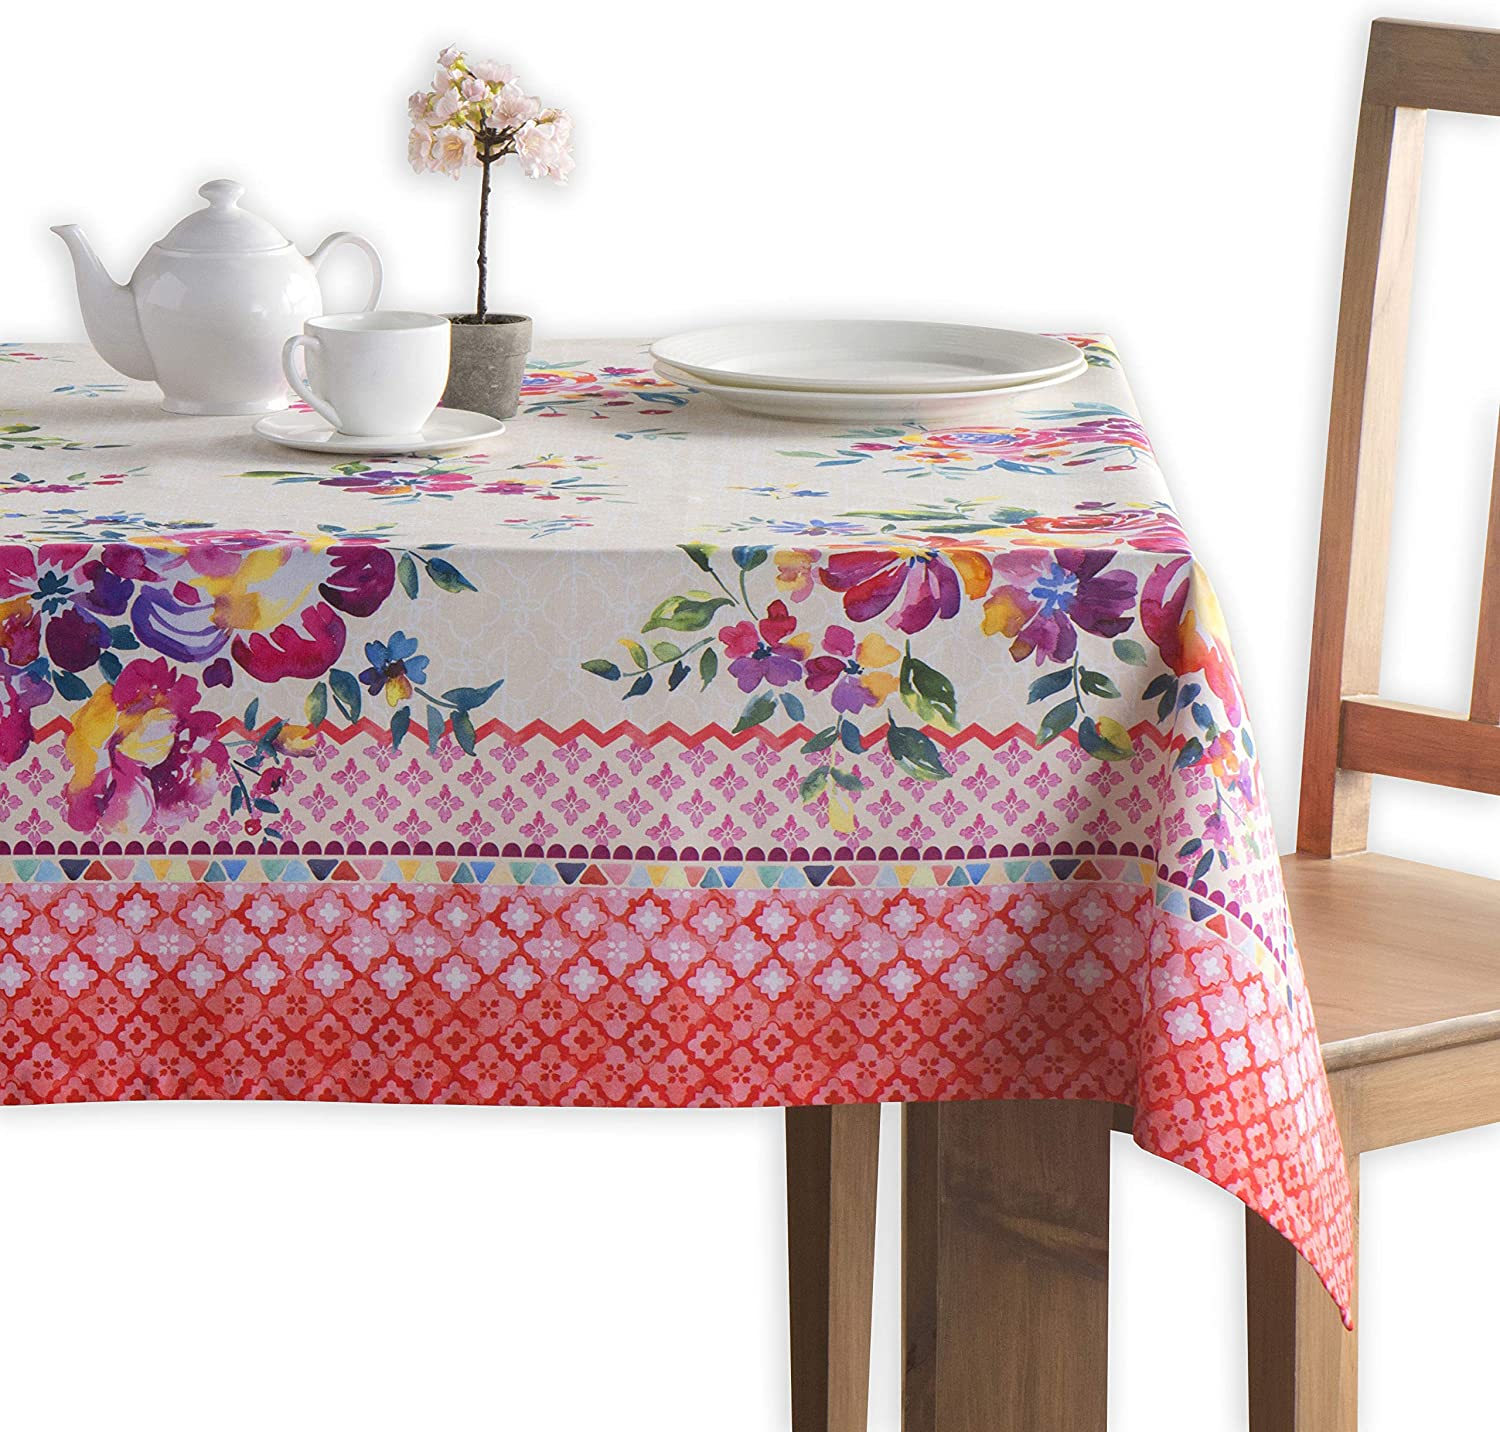 Maison d' Hermine Rose Garden 100% Cotton Tablecloth for Kitchen Dining | Tabletop | Decoration | Parties | Weddings | Spring/Summer (Square, 60 Inch by 60 Inch)